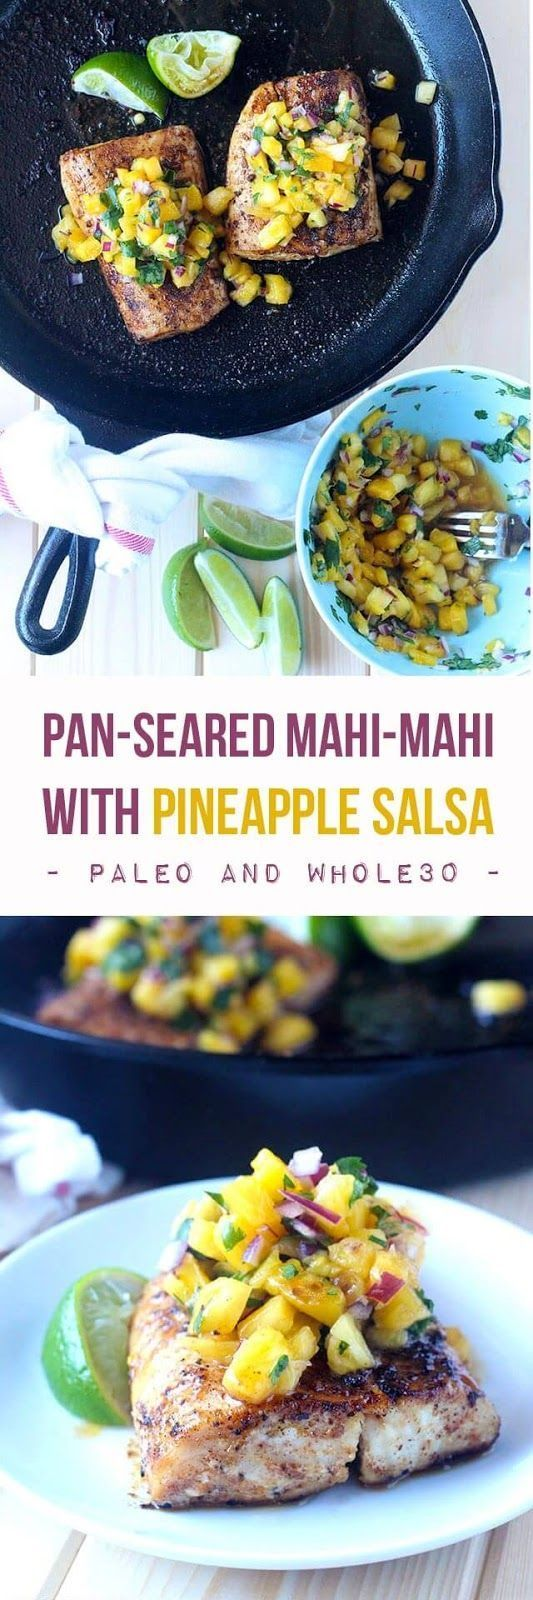 Healthy Fish Recipe: Pan-Seared Mahi-Mahi with Pineapple Salsa (Quick & Easy) | Real Food | Paleo | Whole30 |